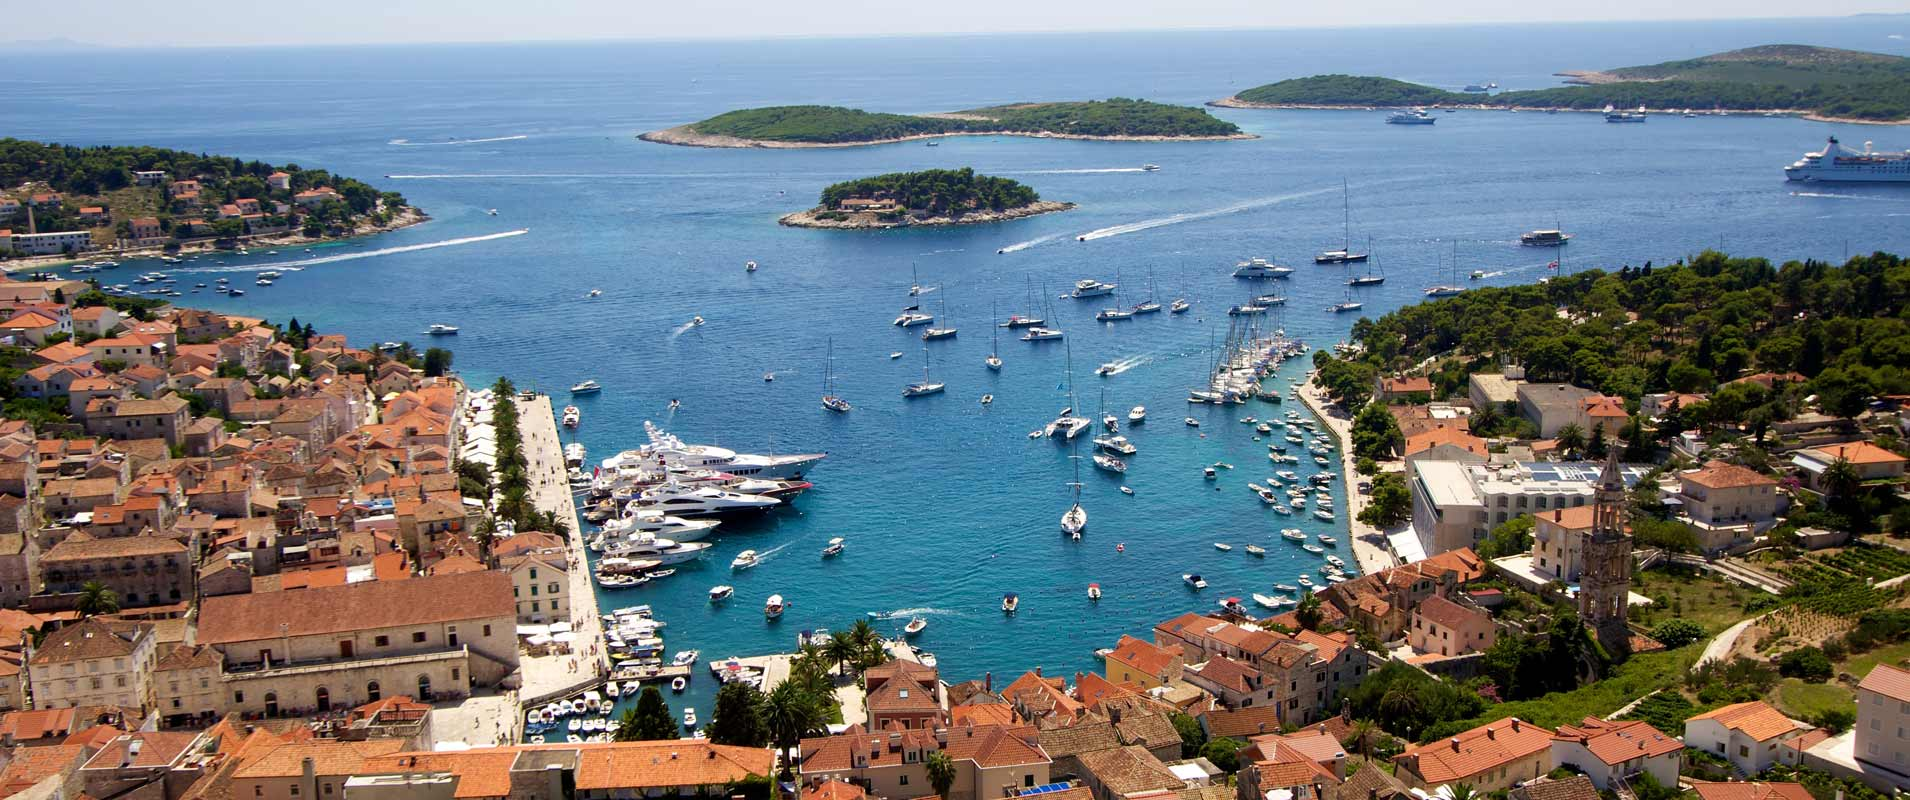 Between Zadar And Split For An Amazing Mix Of Natural Wonders With The  Experience Of Some Of Croatia's Best Party Destinations, Plus The Krka  Waterfalls